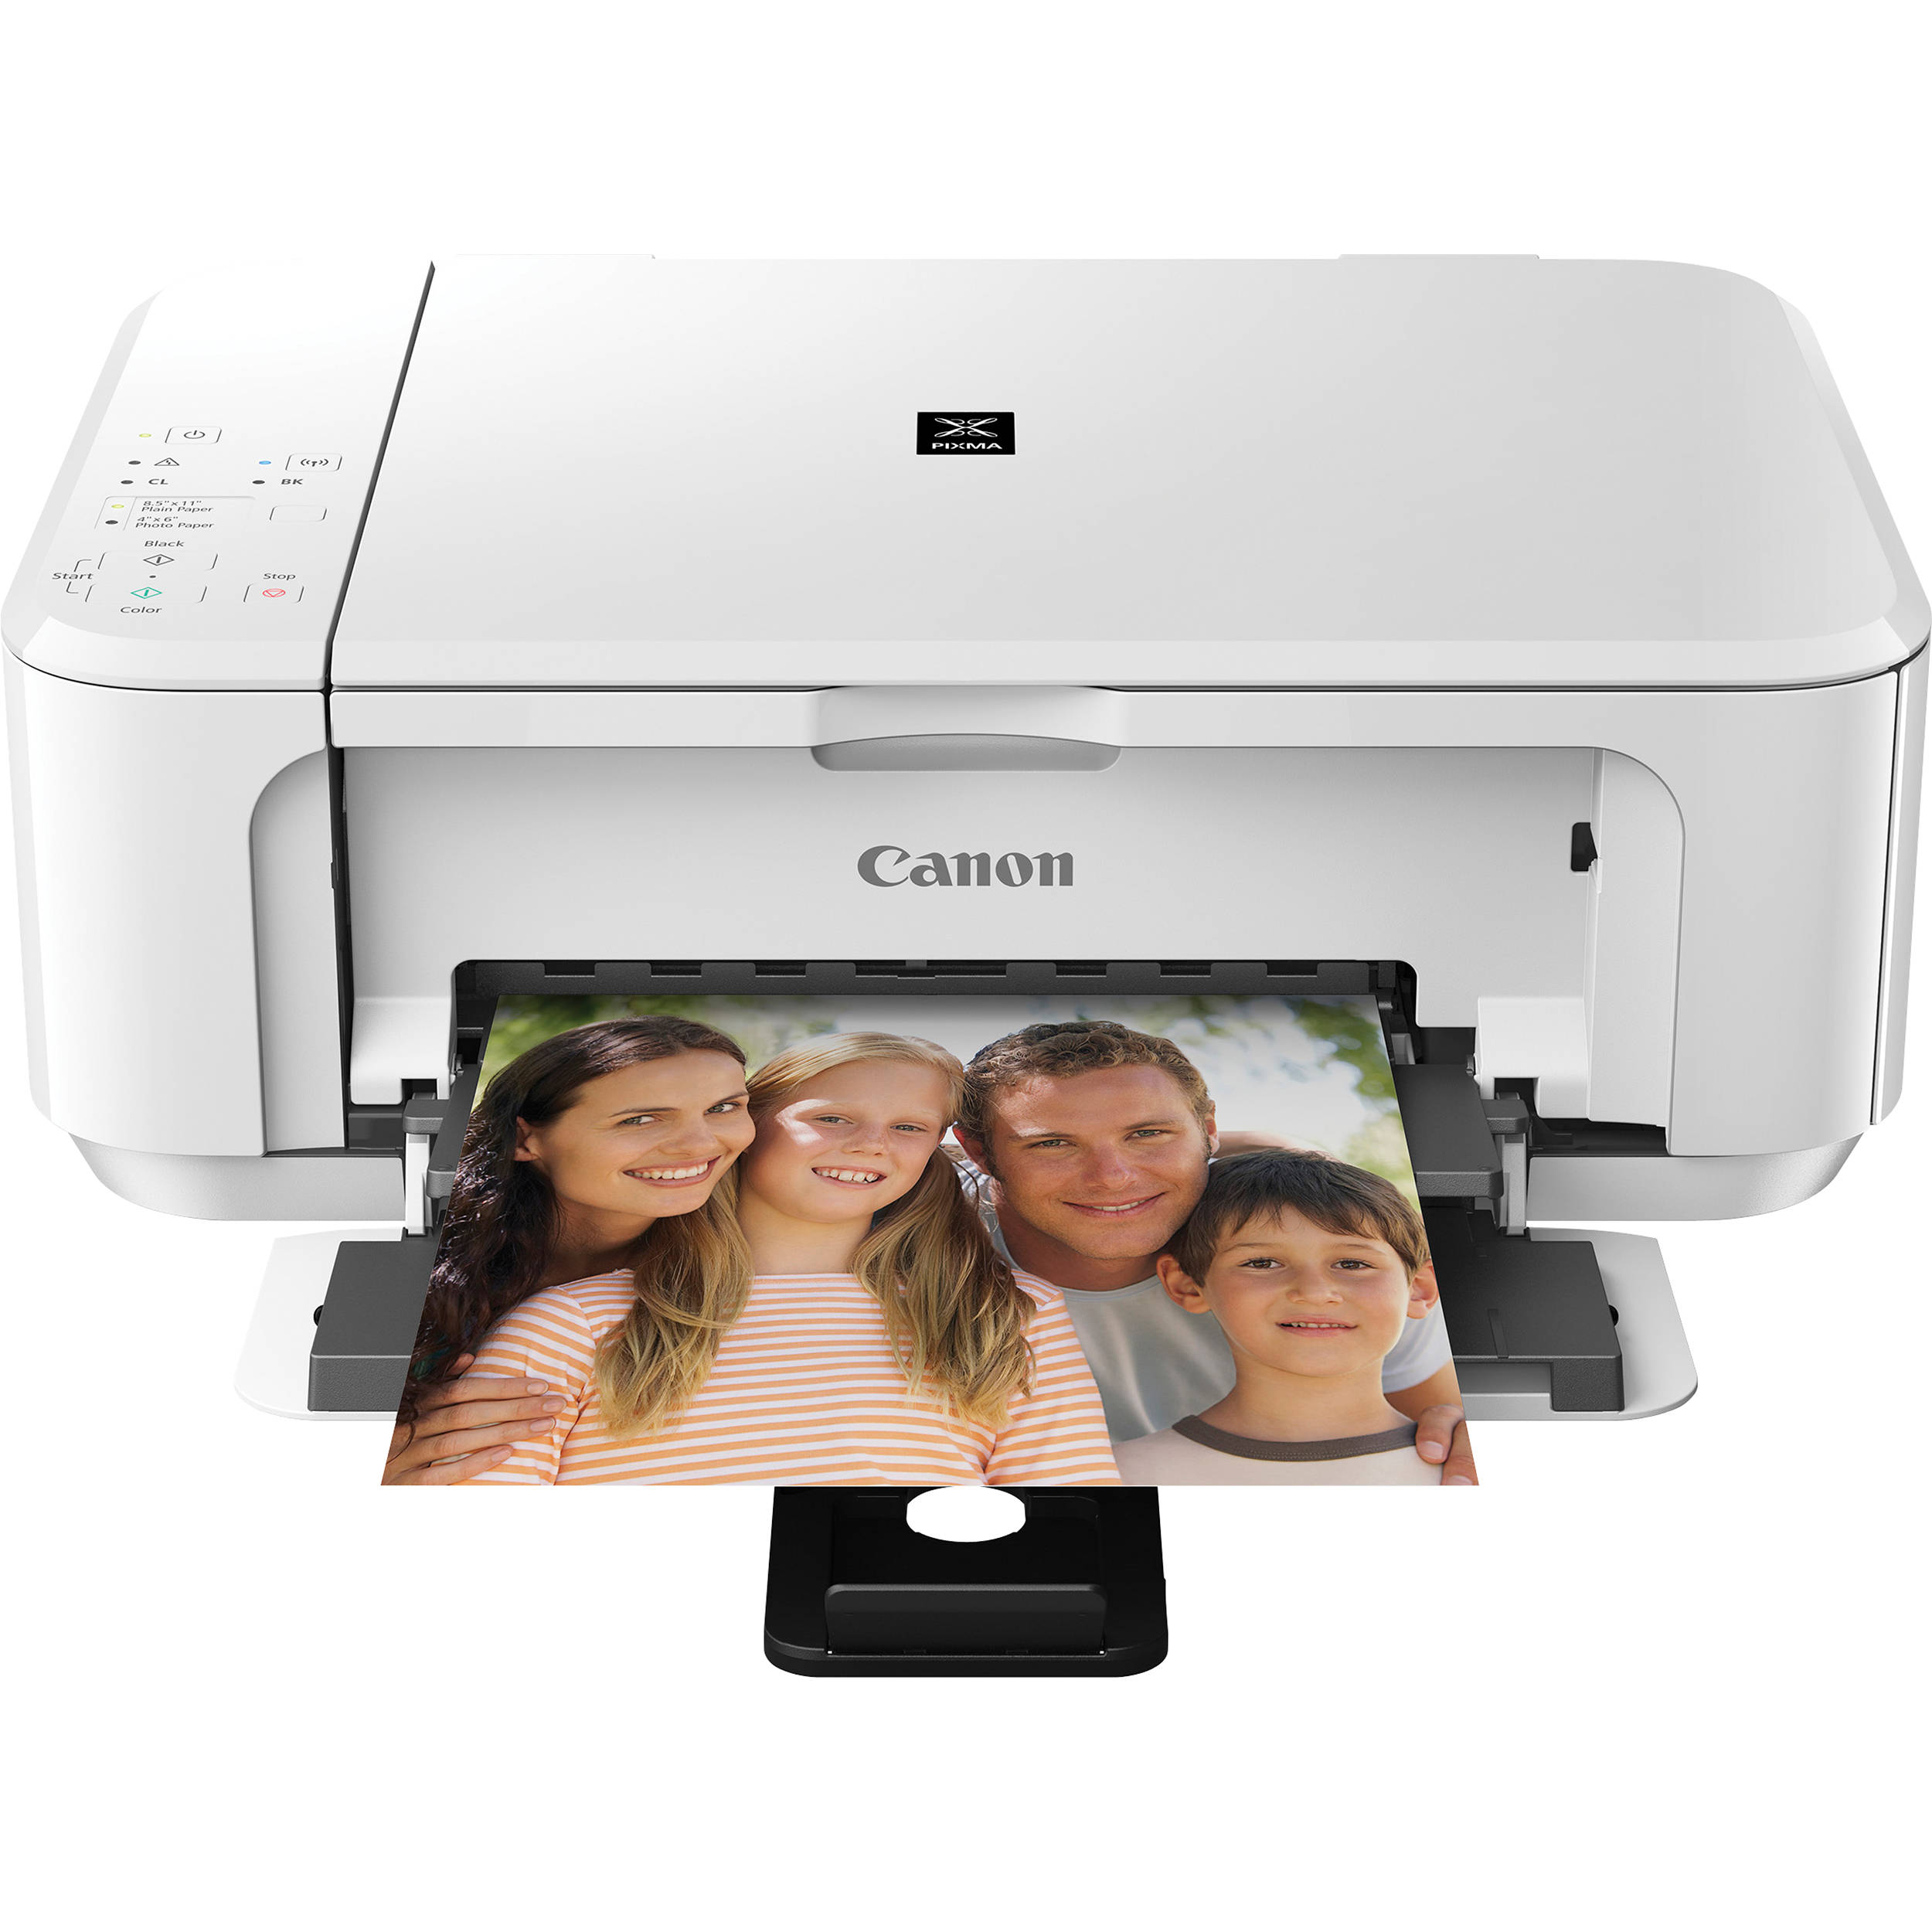 canon pixma mg3520 wireless color all in one inkjet. Black Bedroom Furniture Sets. Home Design Ideas